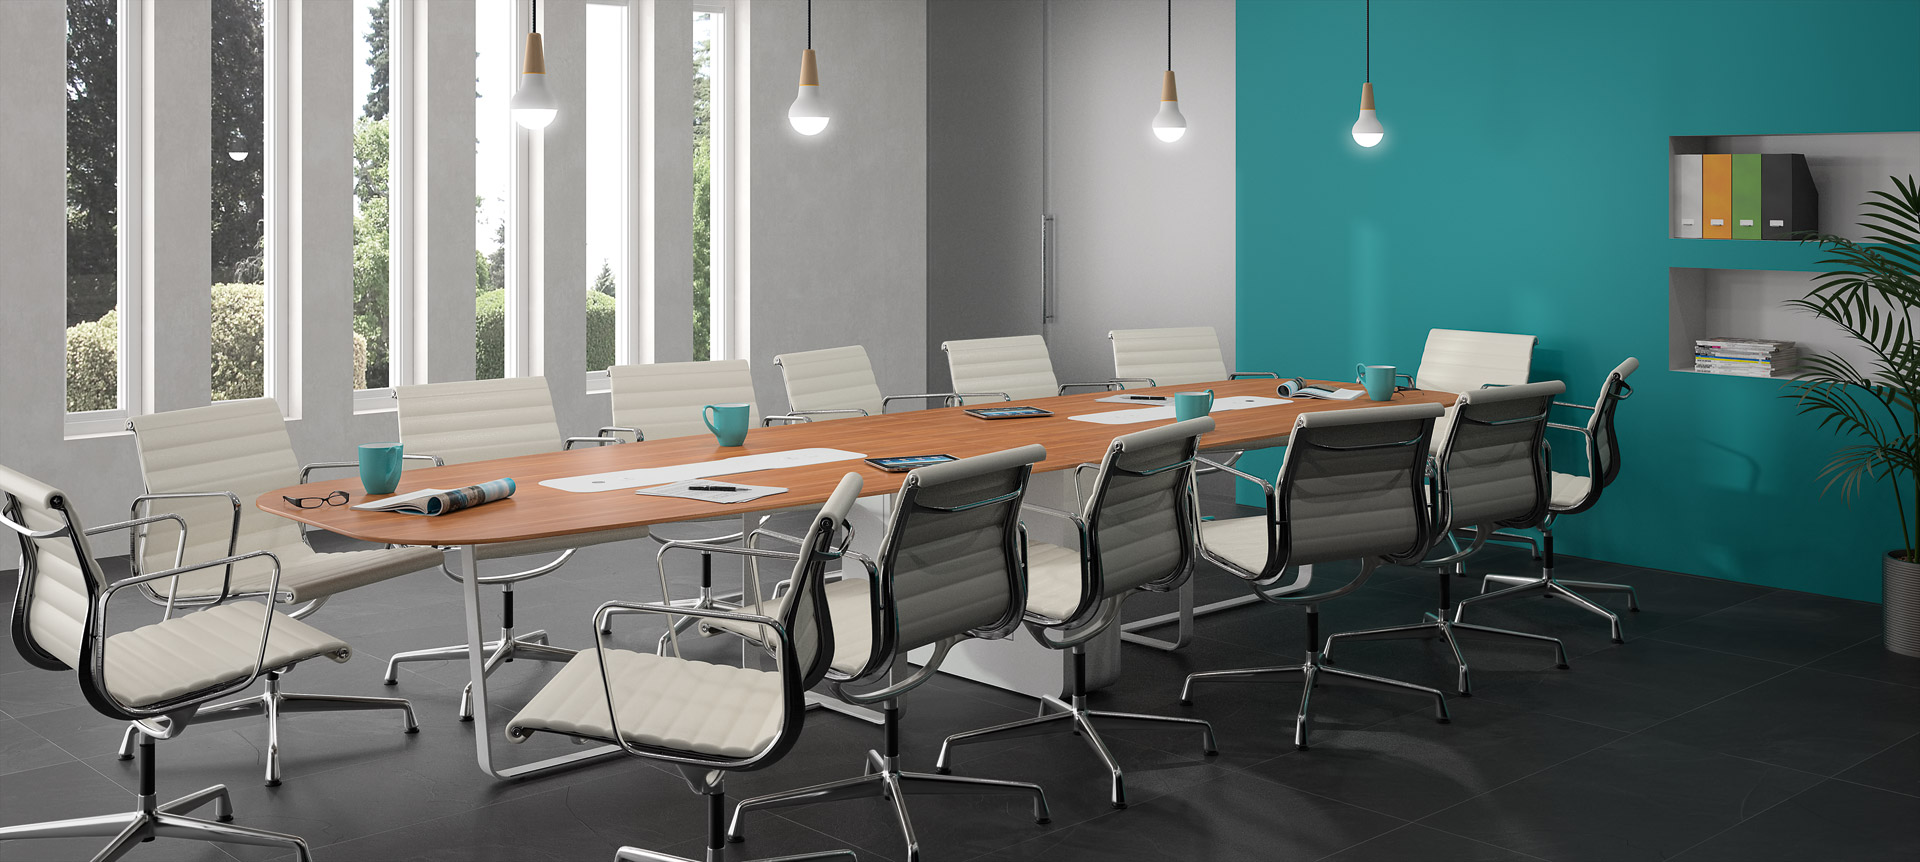 WEMEET MIXED - Table for meeting and coworking spaces